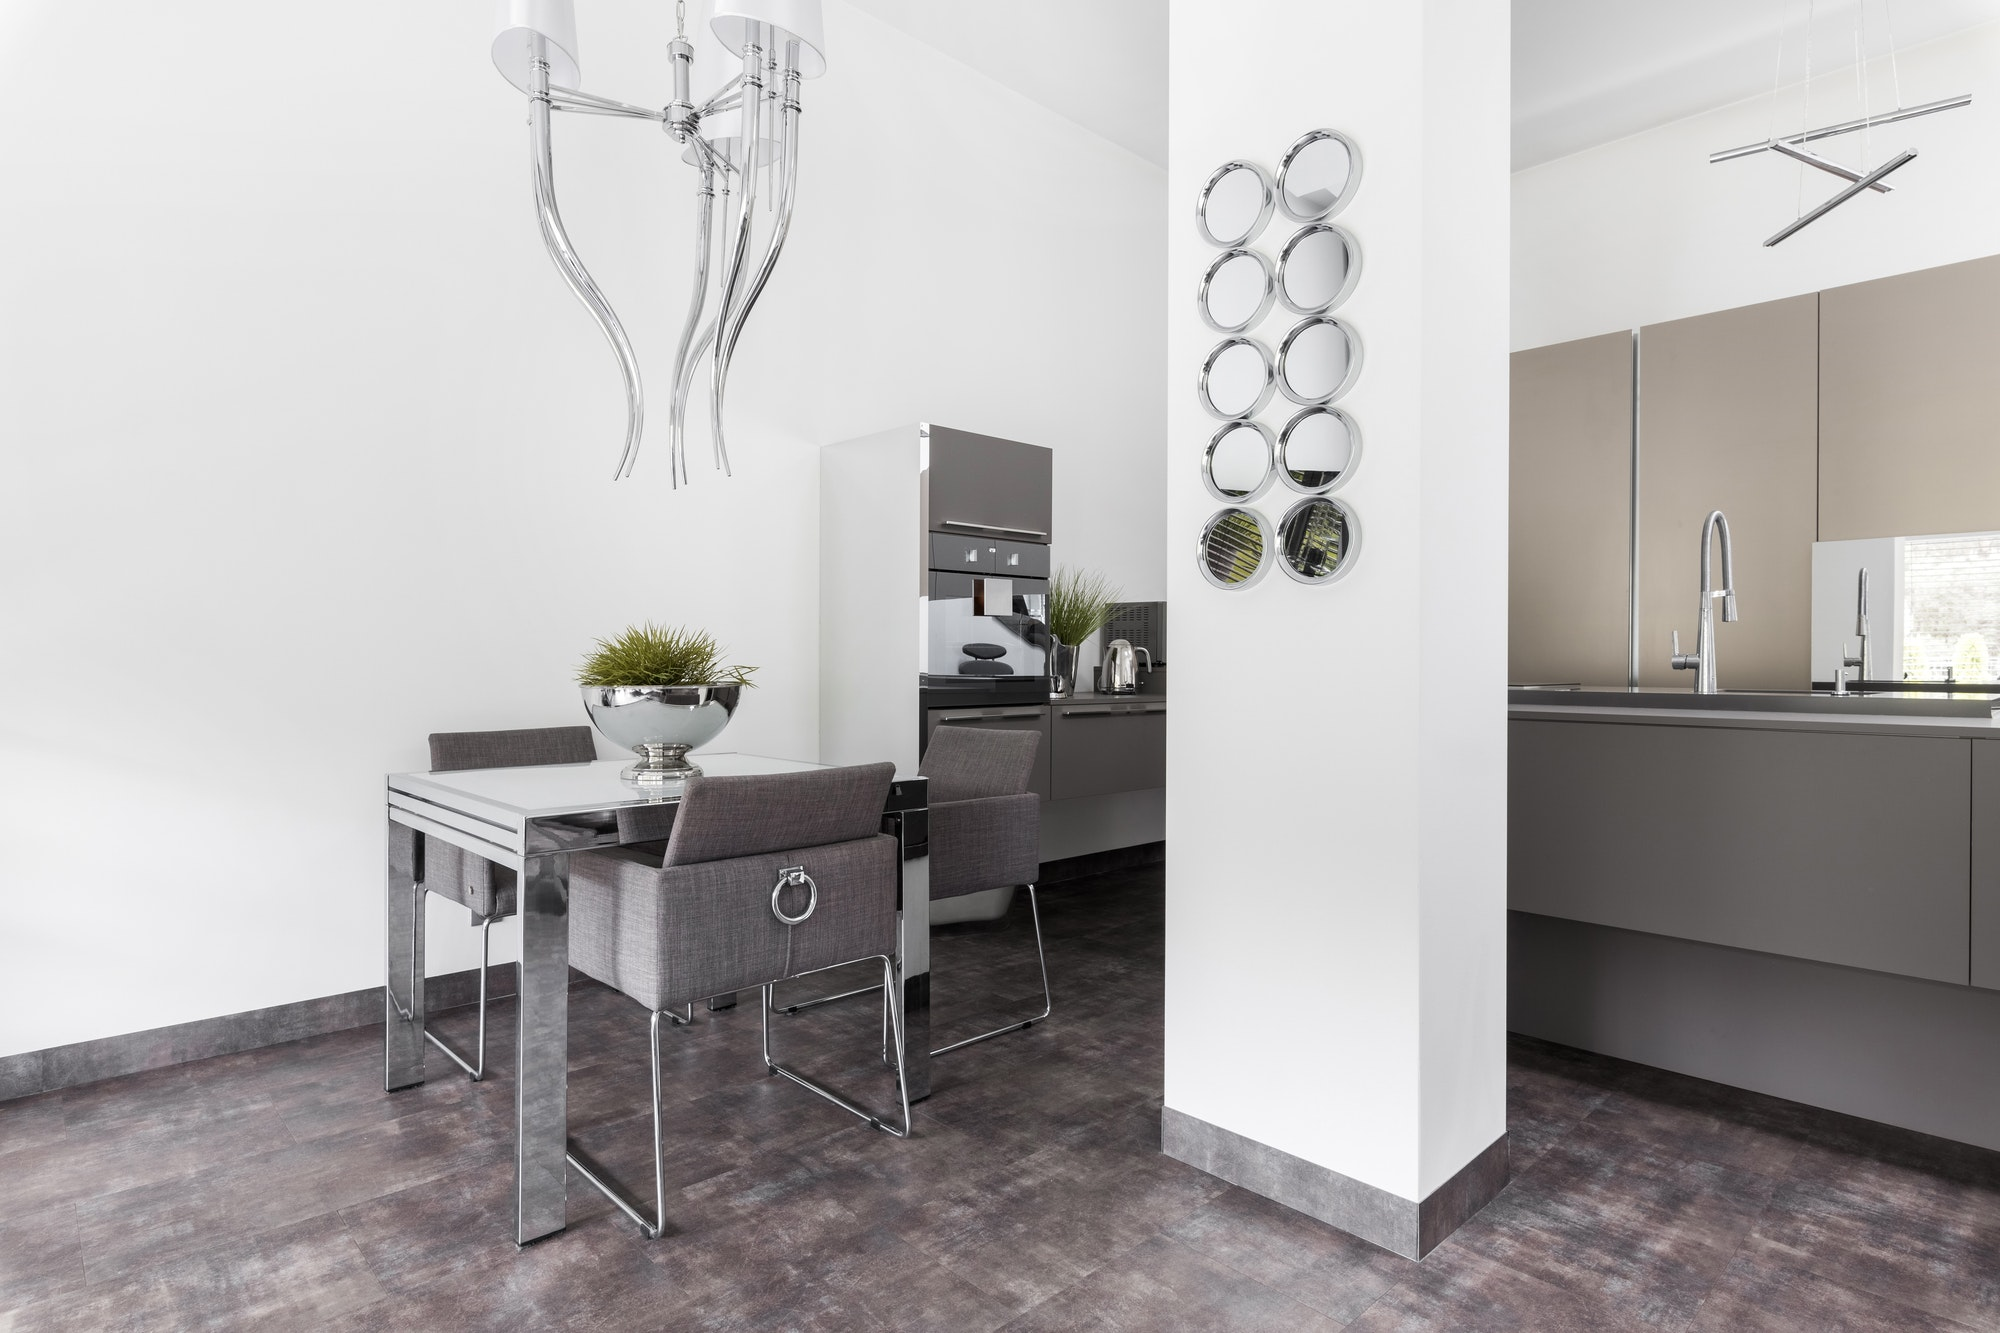 Elegant kitchen with dining room table and grey design in fashionable house